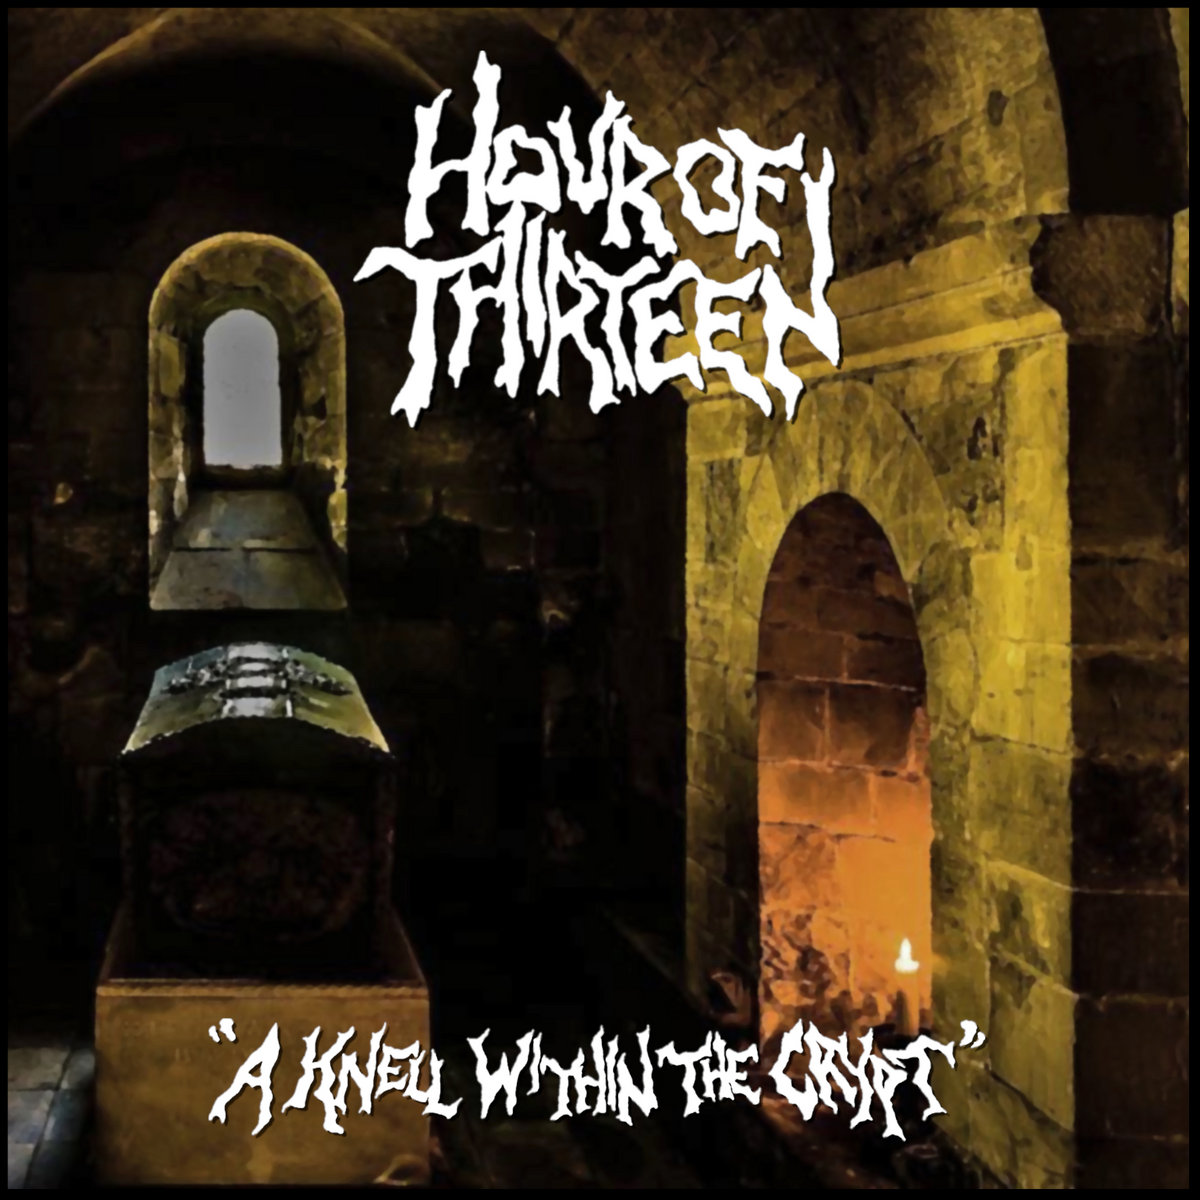 HOUR OF THIRTEEN - A Knell Within The Crypt